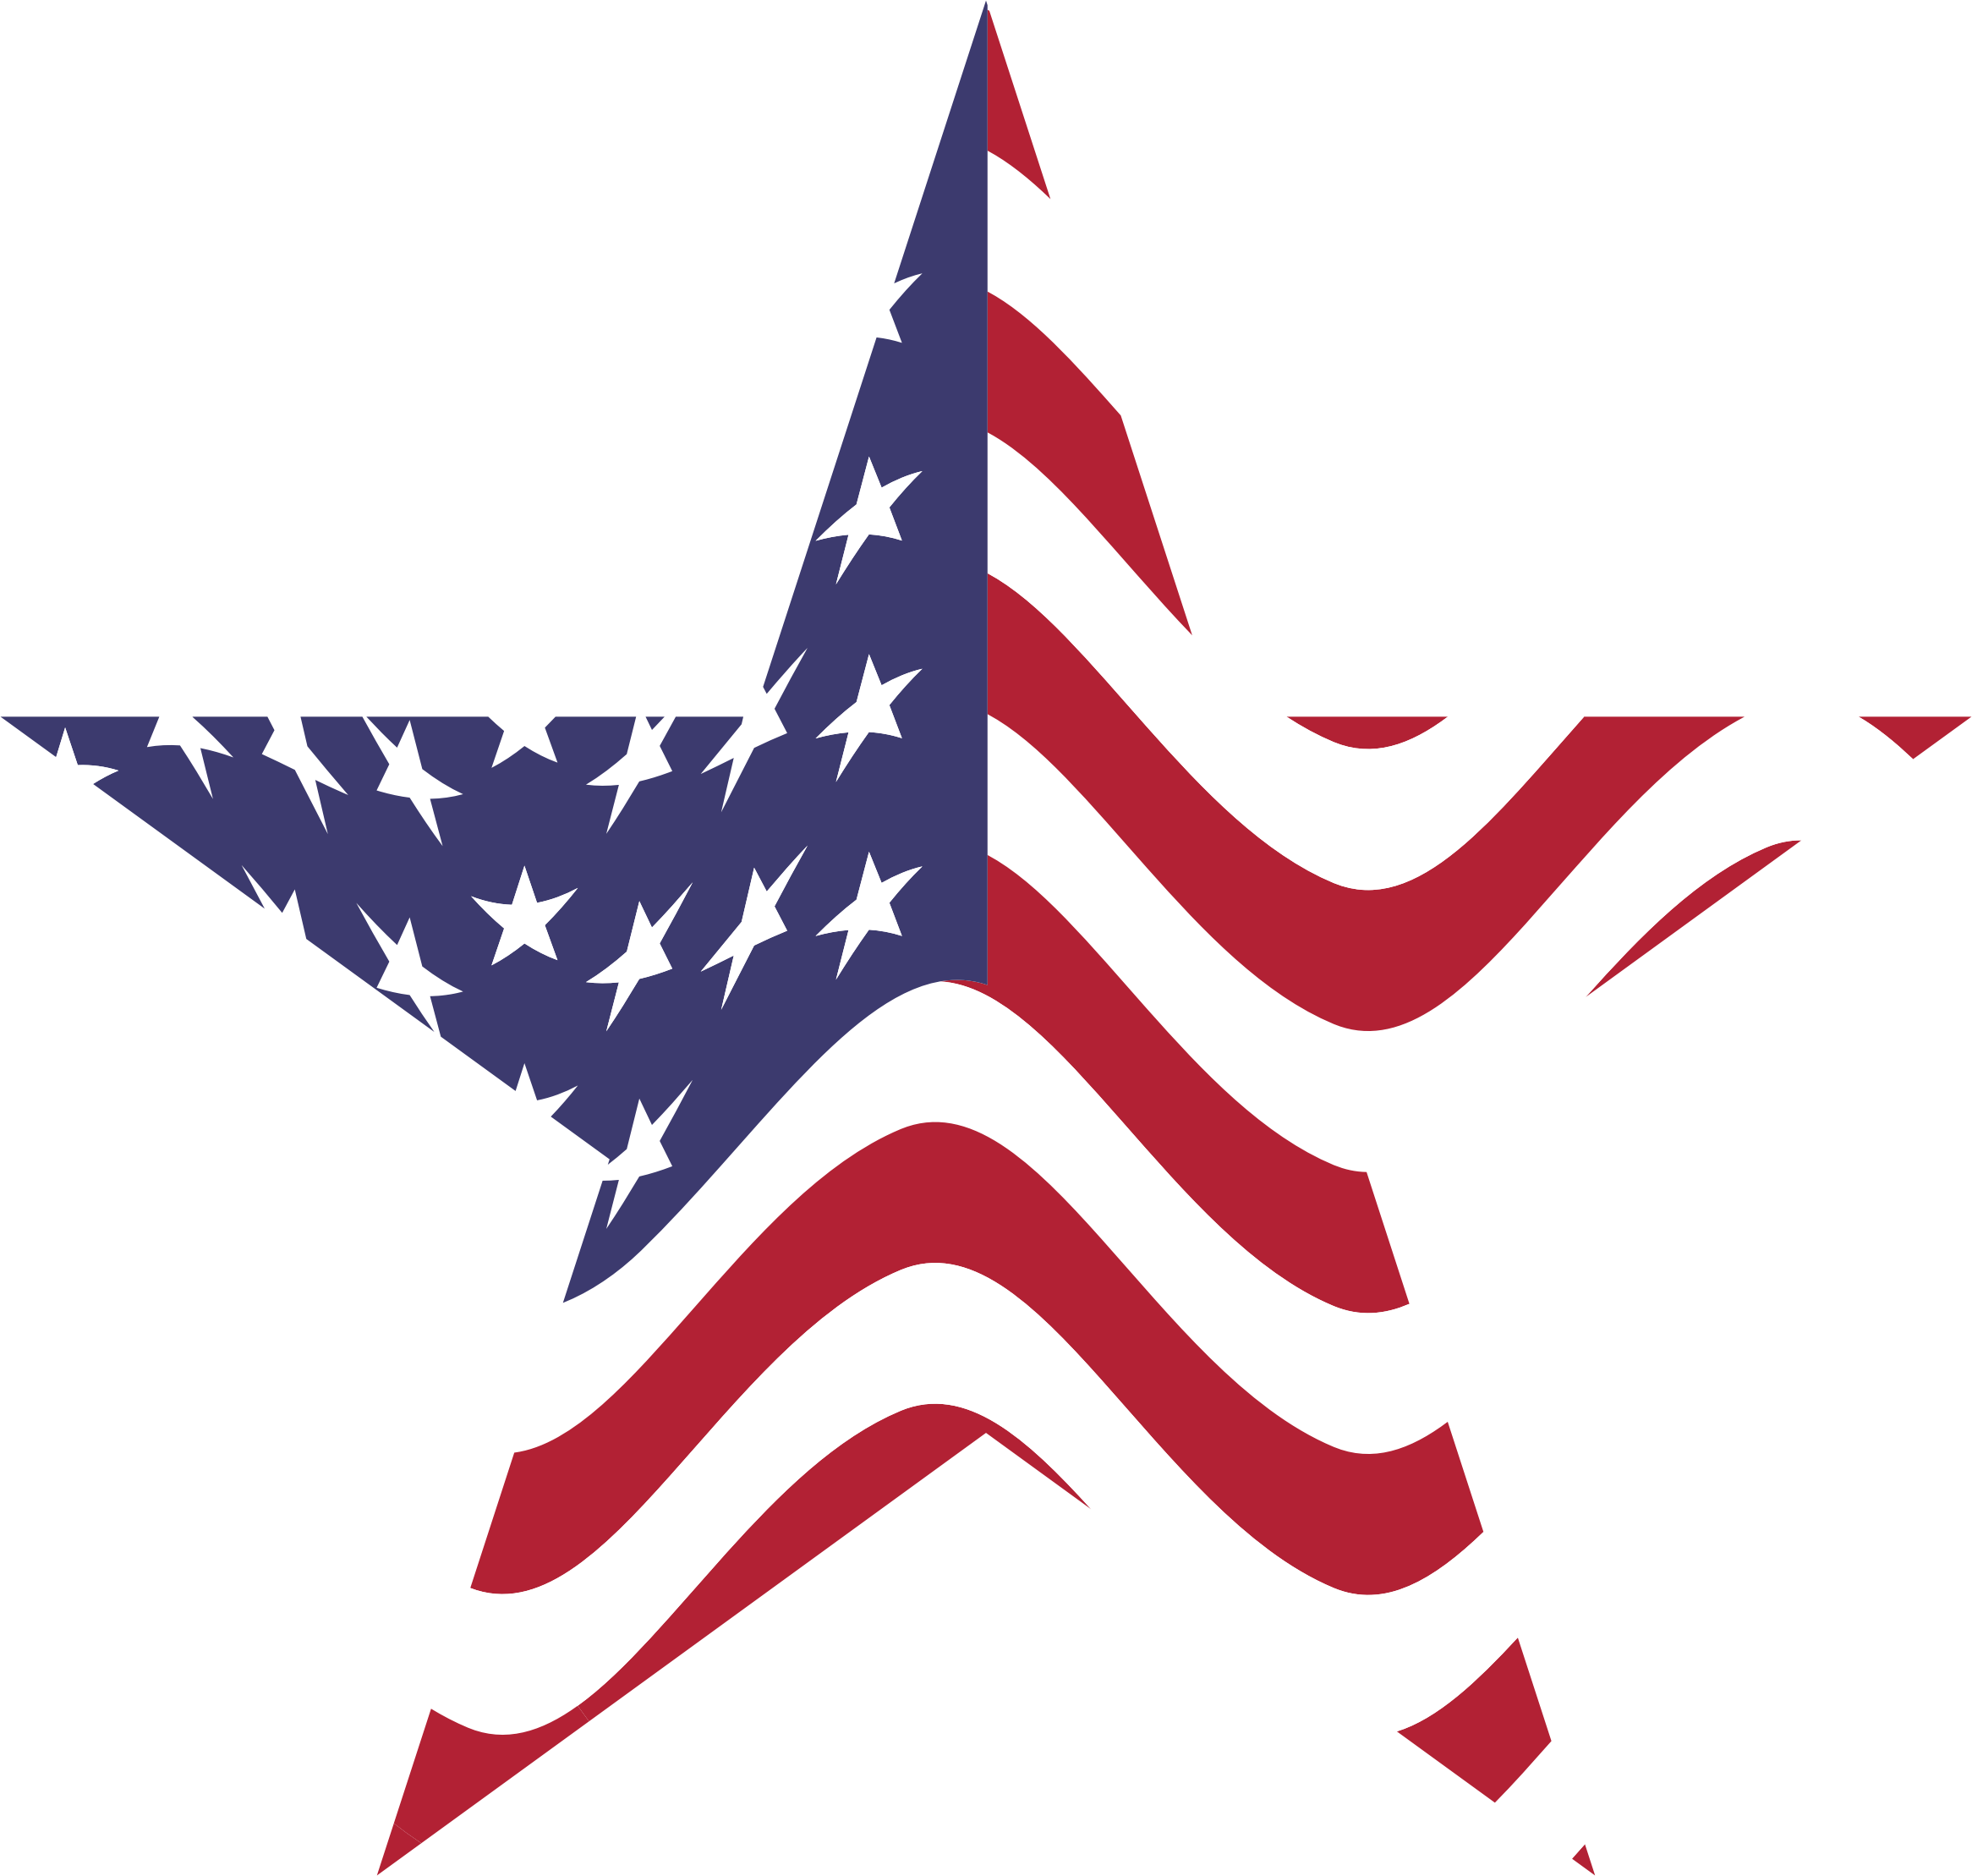 Clipart american flag.